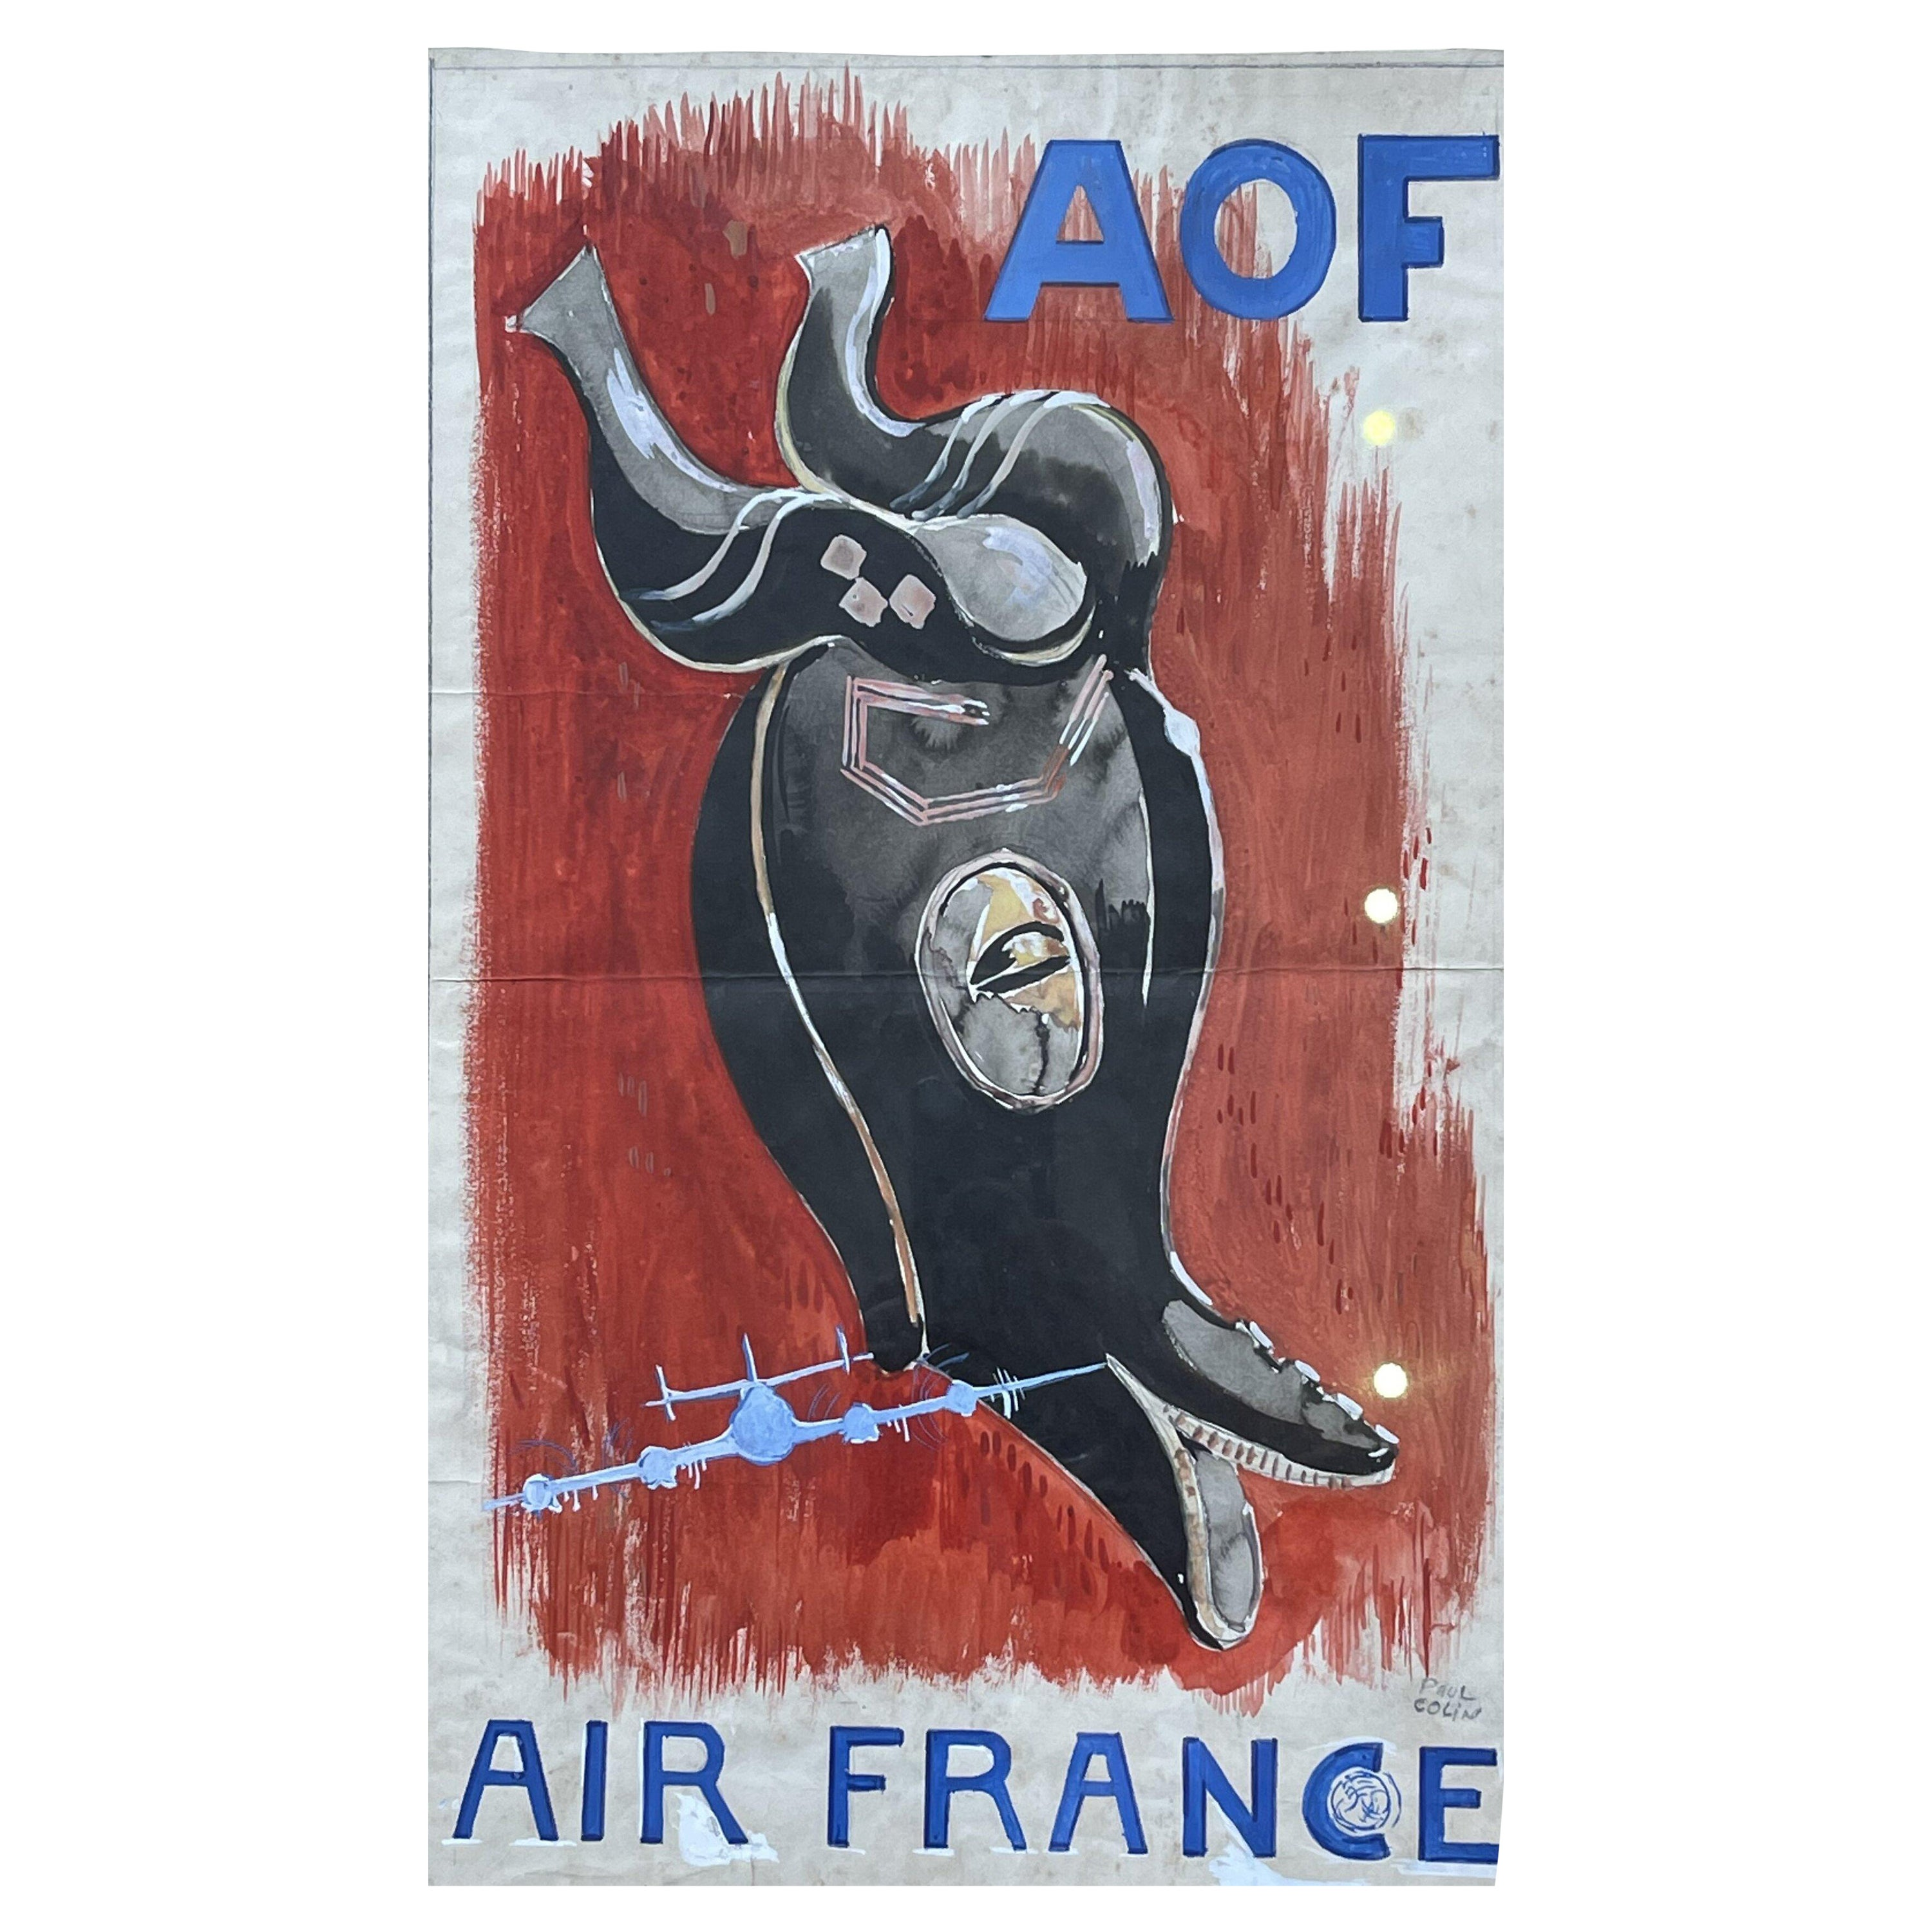 Poster Project for Air France, Watercolor on Paper by Paul Colin, France, 1950's